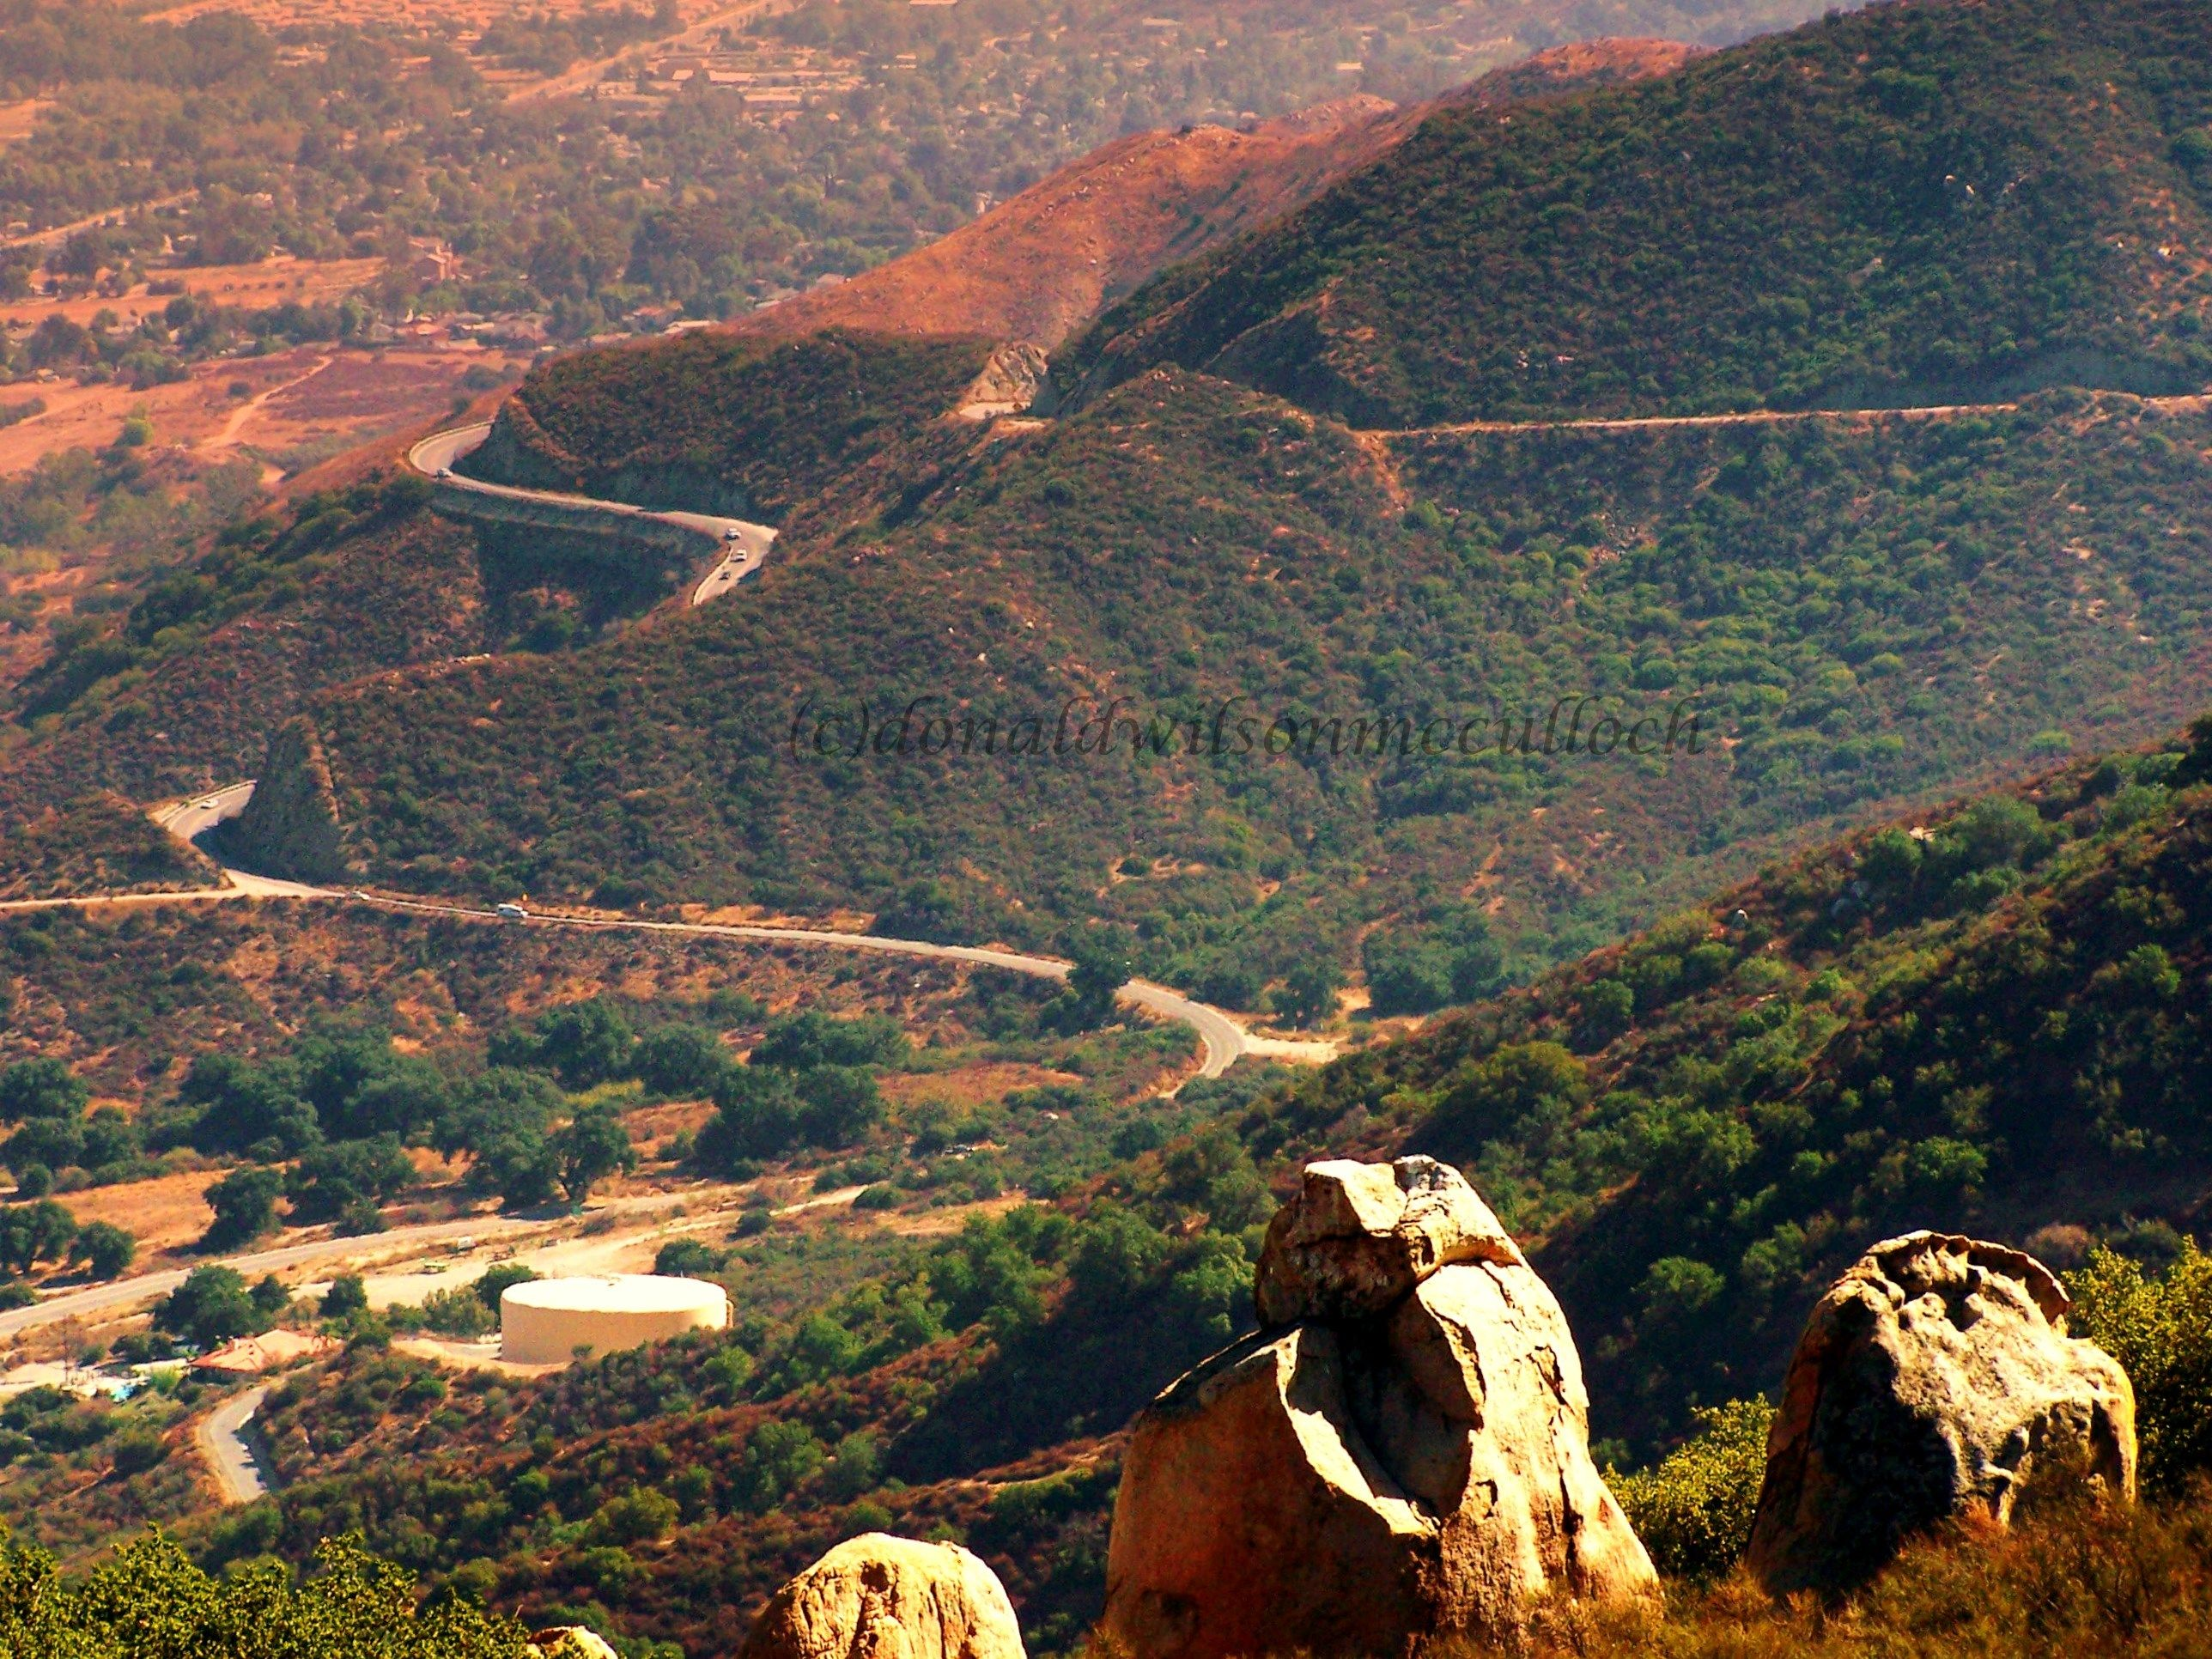 Lake Elsinore, CA | The Ortega Highway (Route 74) is a vital artery